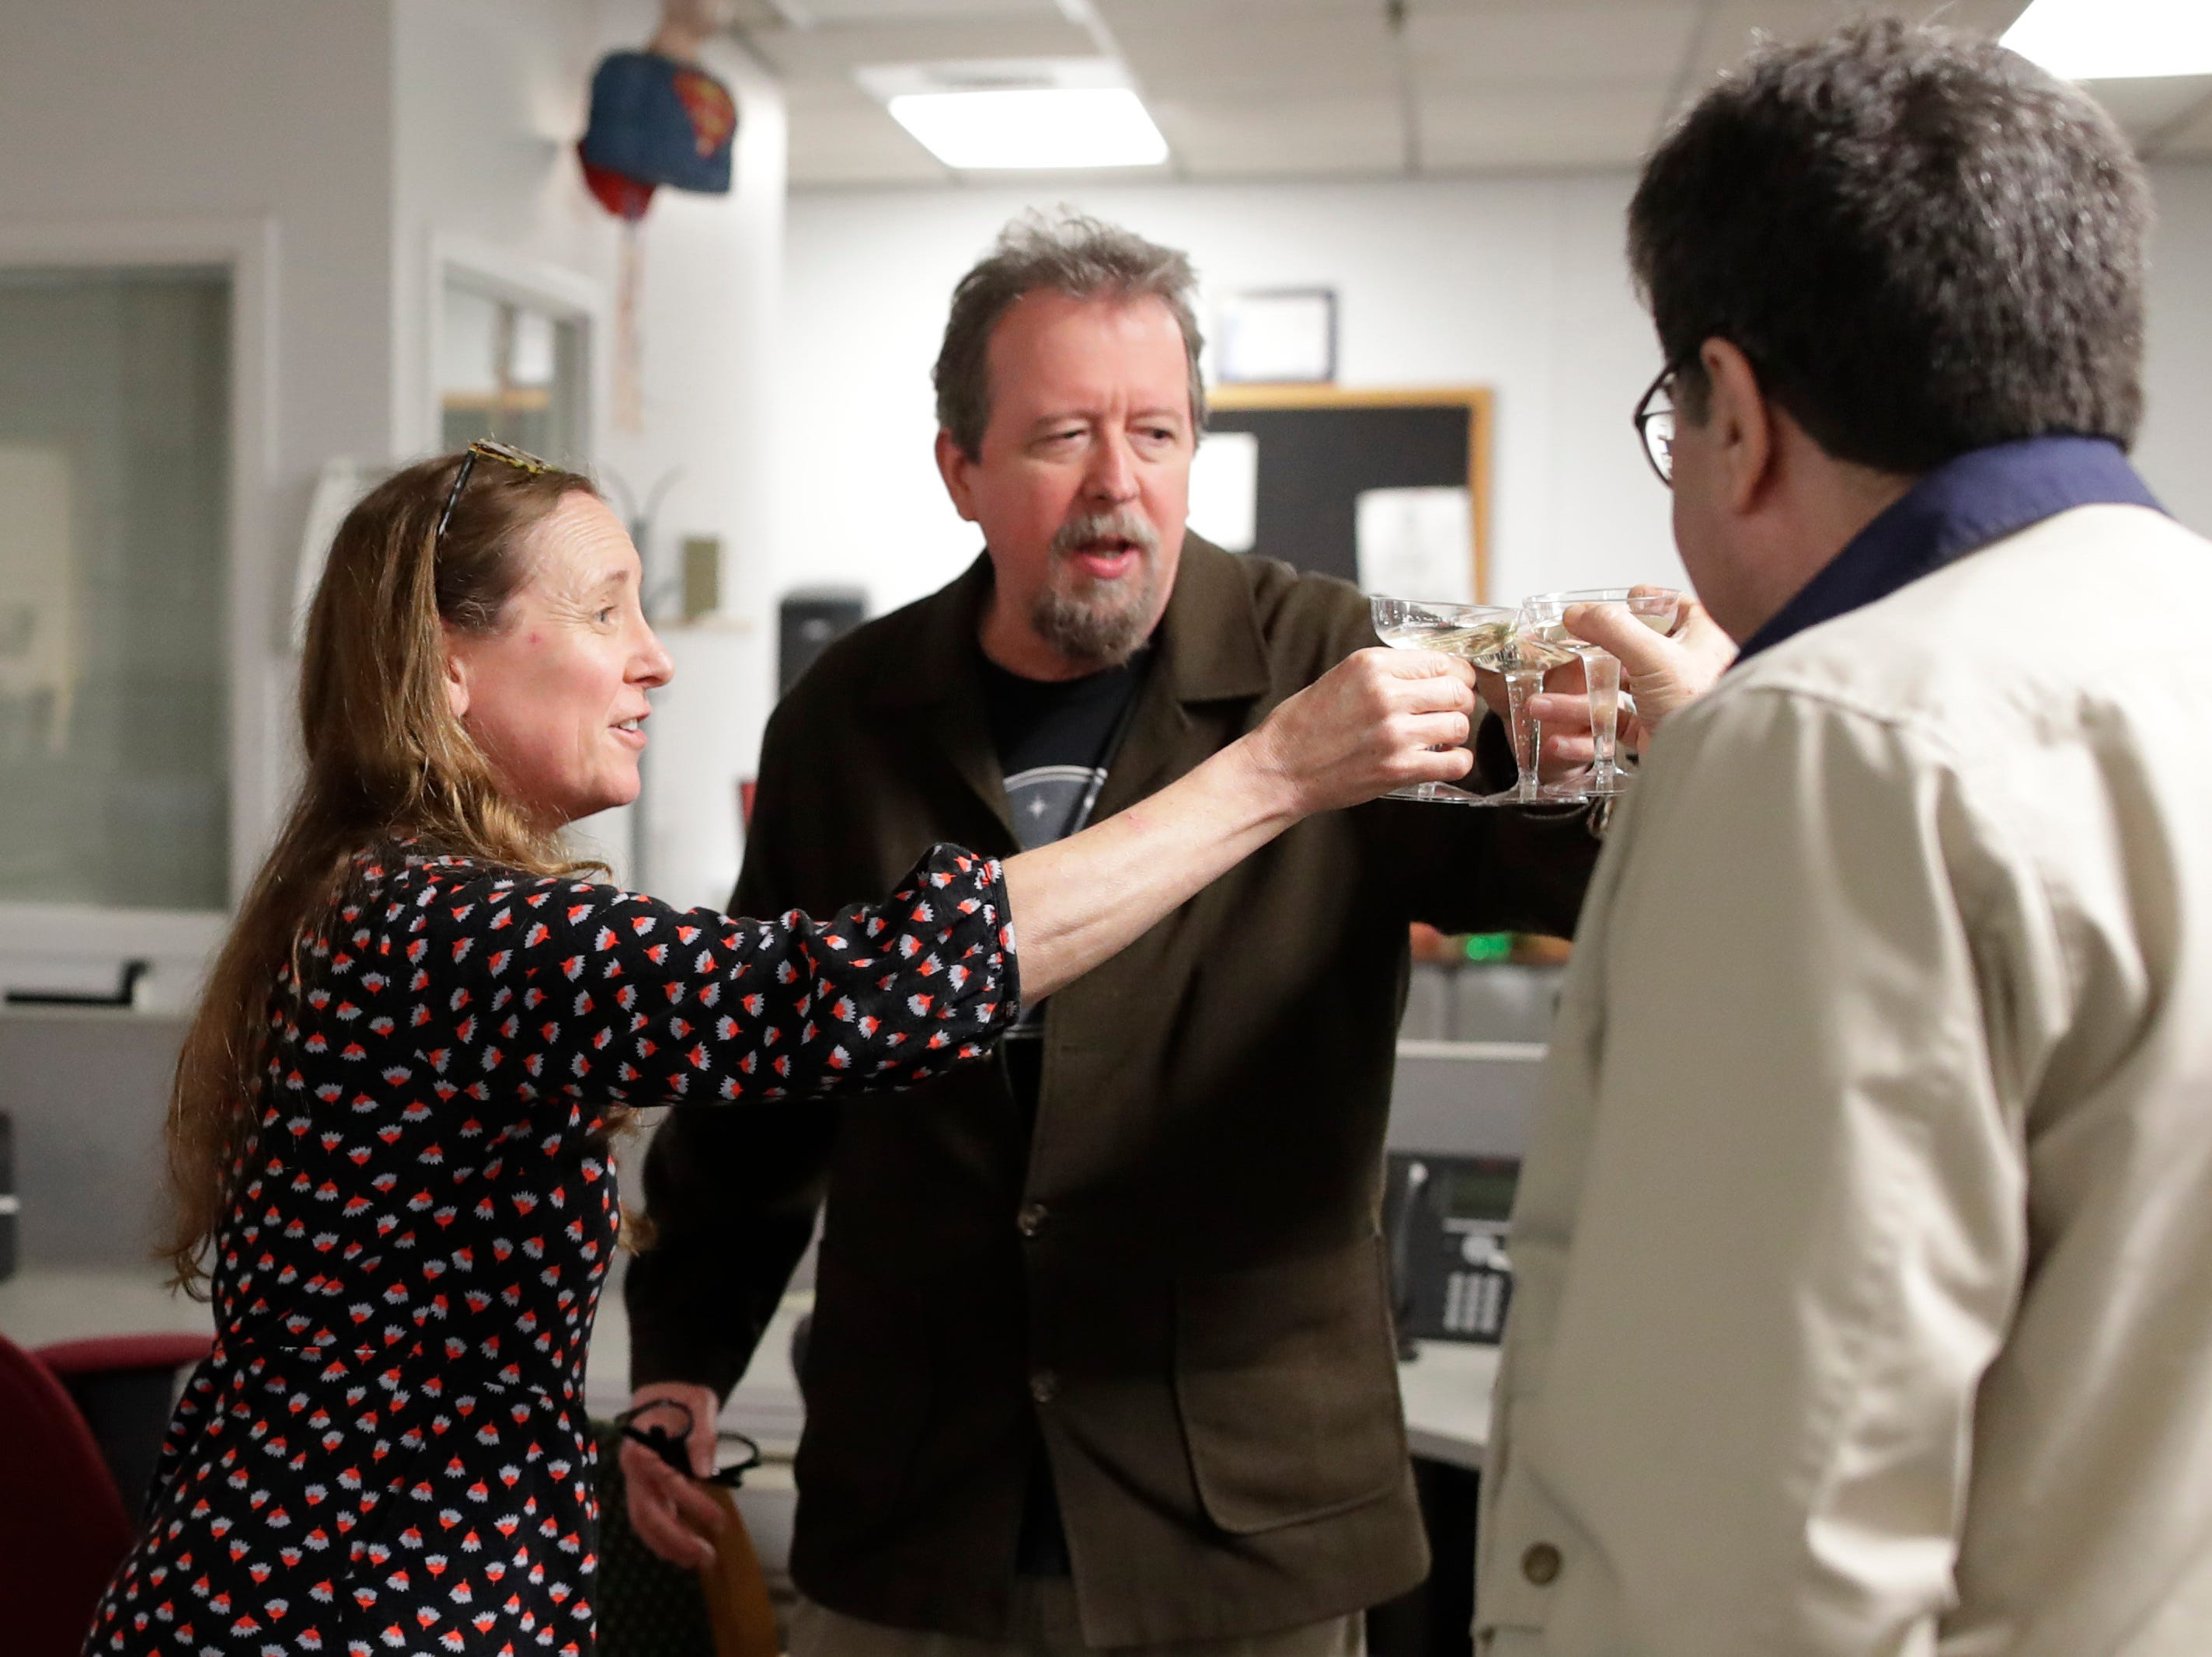 News Director Jennifer Portman, Former Arts and Entertainment Editor Mark Hinson and Capitol Reporter James Call toast to Hinson on his last day of work at the Tallahassee Democrat Wednesday, Jan. 2, 2019.